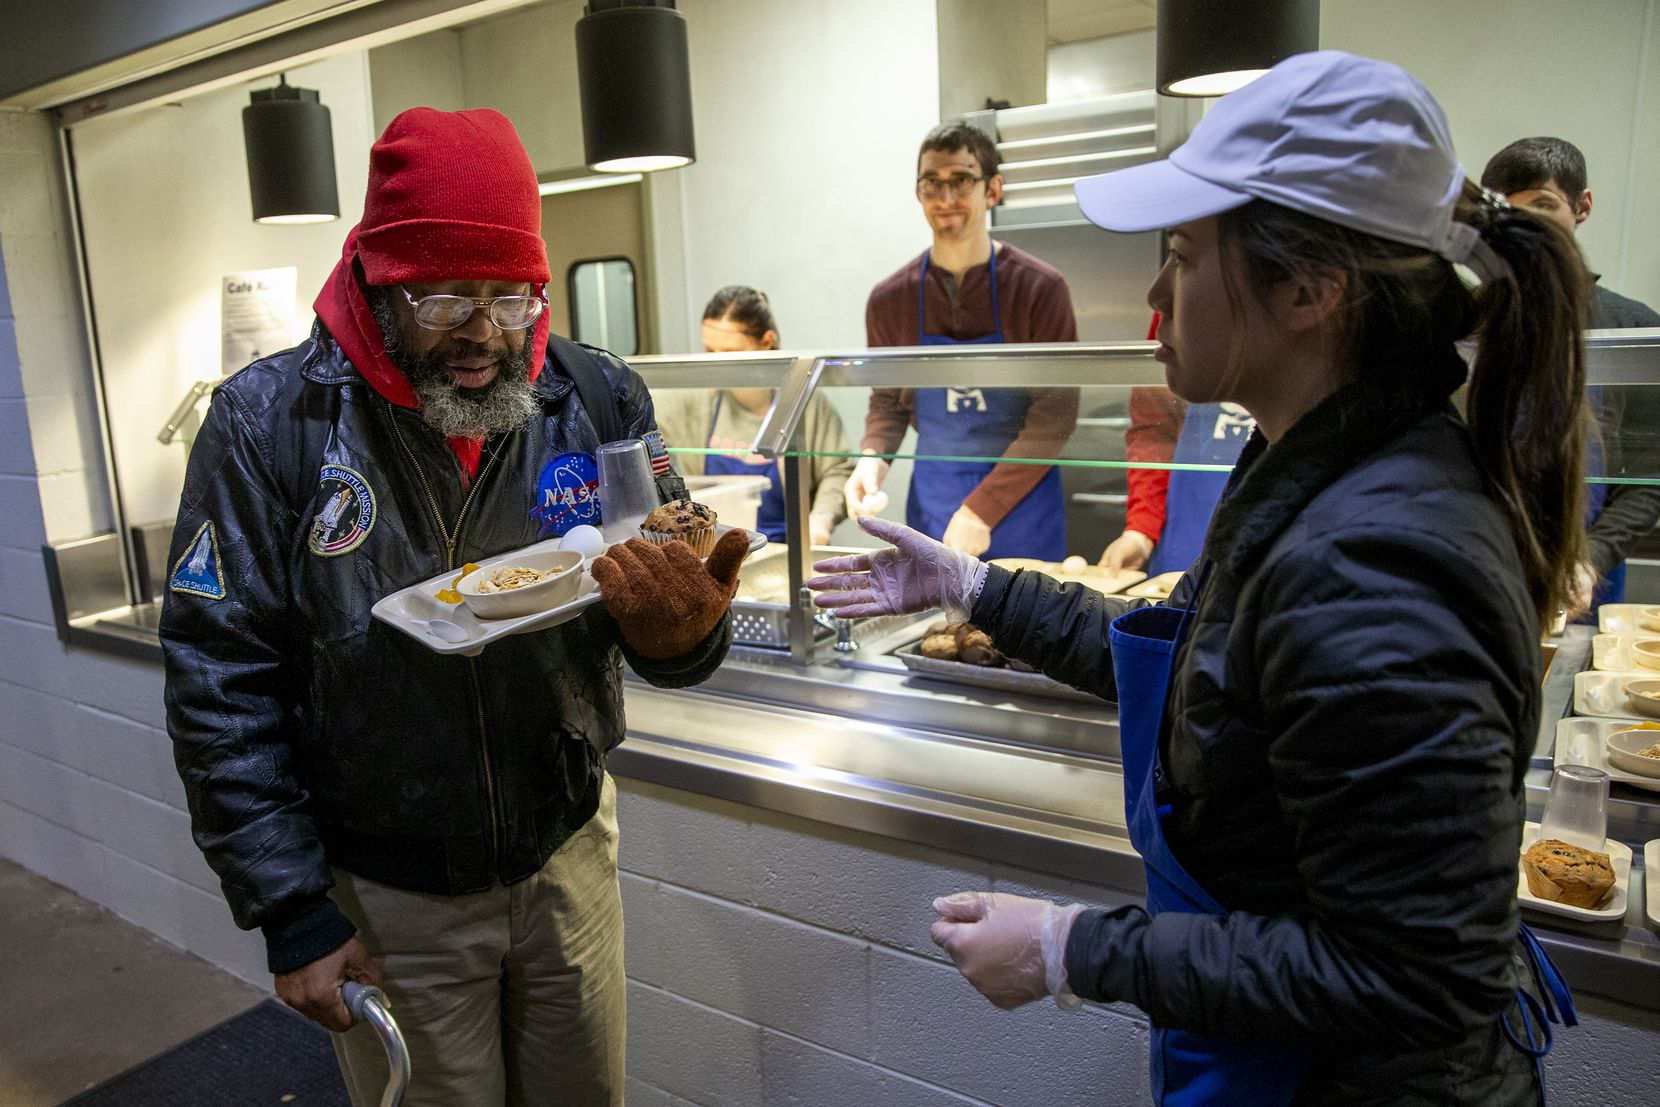 Nghiem Duong helped Randy as he carefully balanced his breakfast tray at The Bridge Homeless Recovery Center on Jan. 11, 2020.